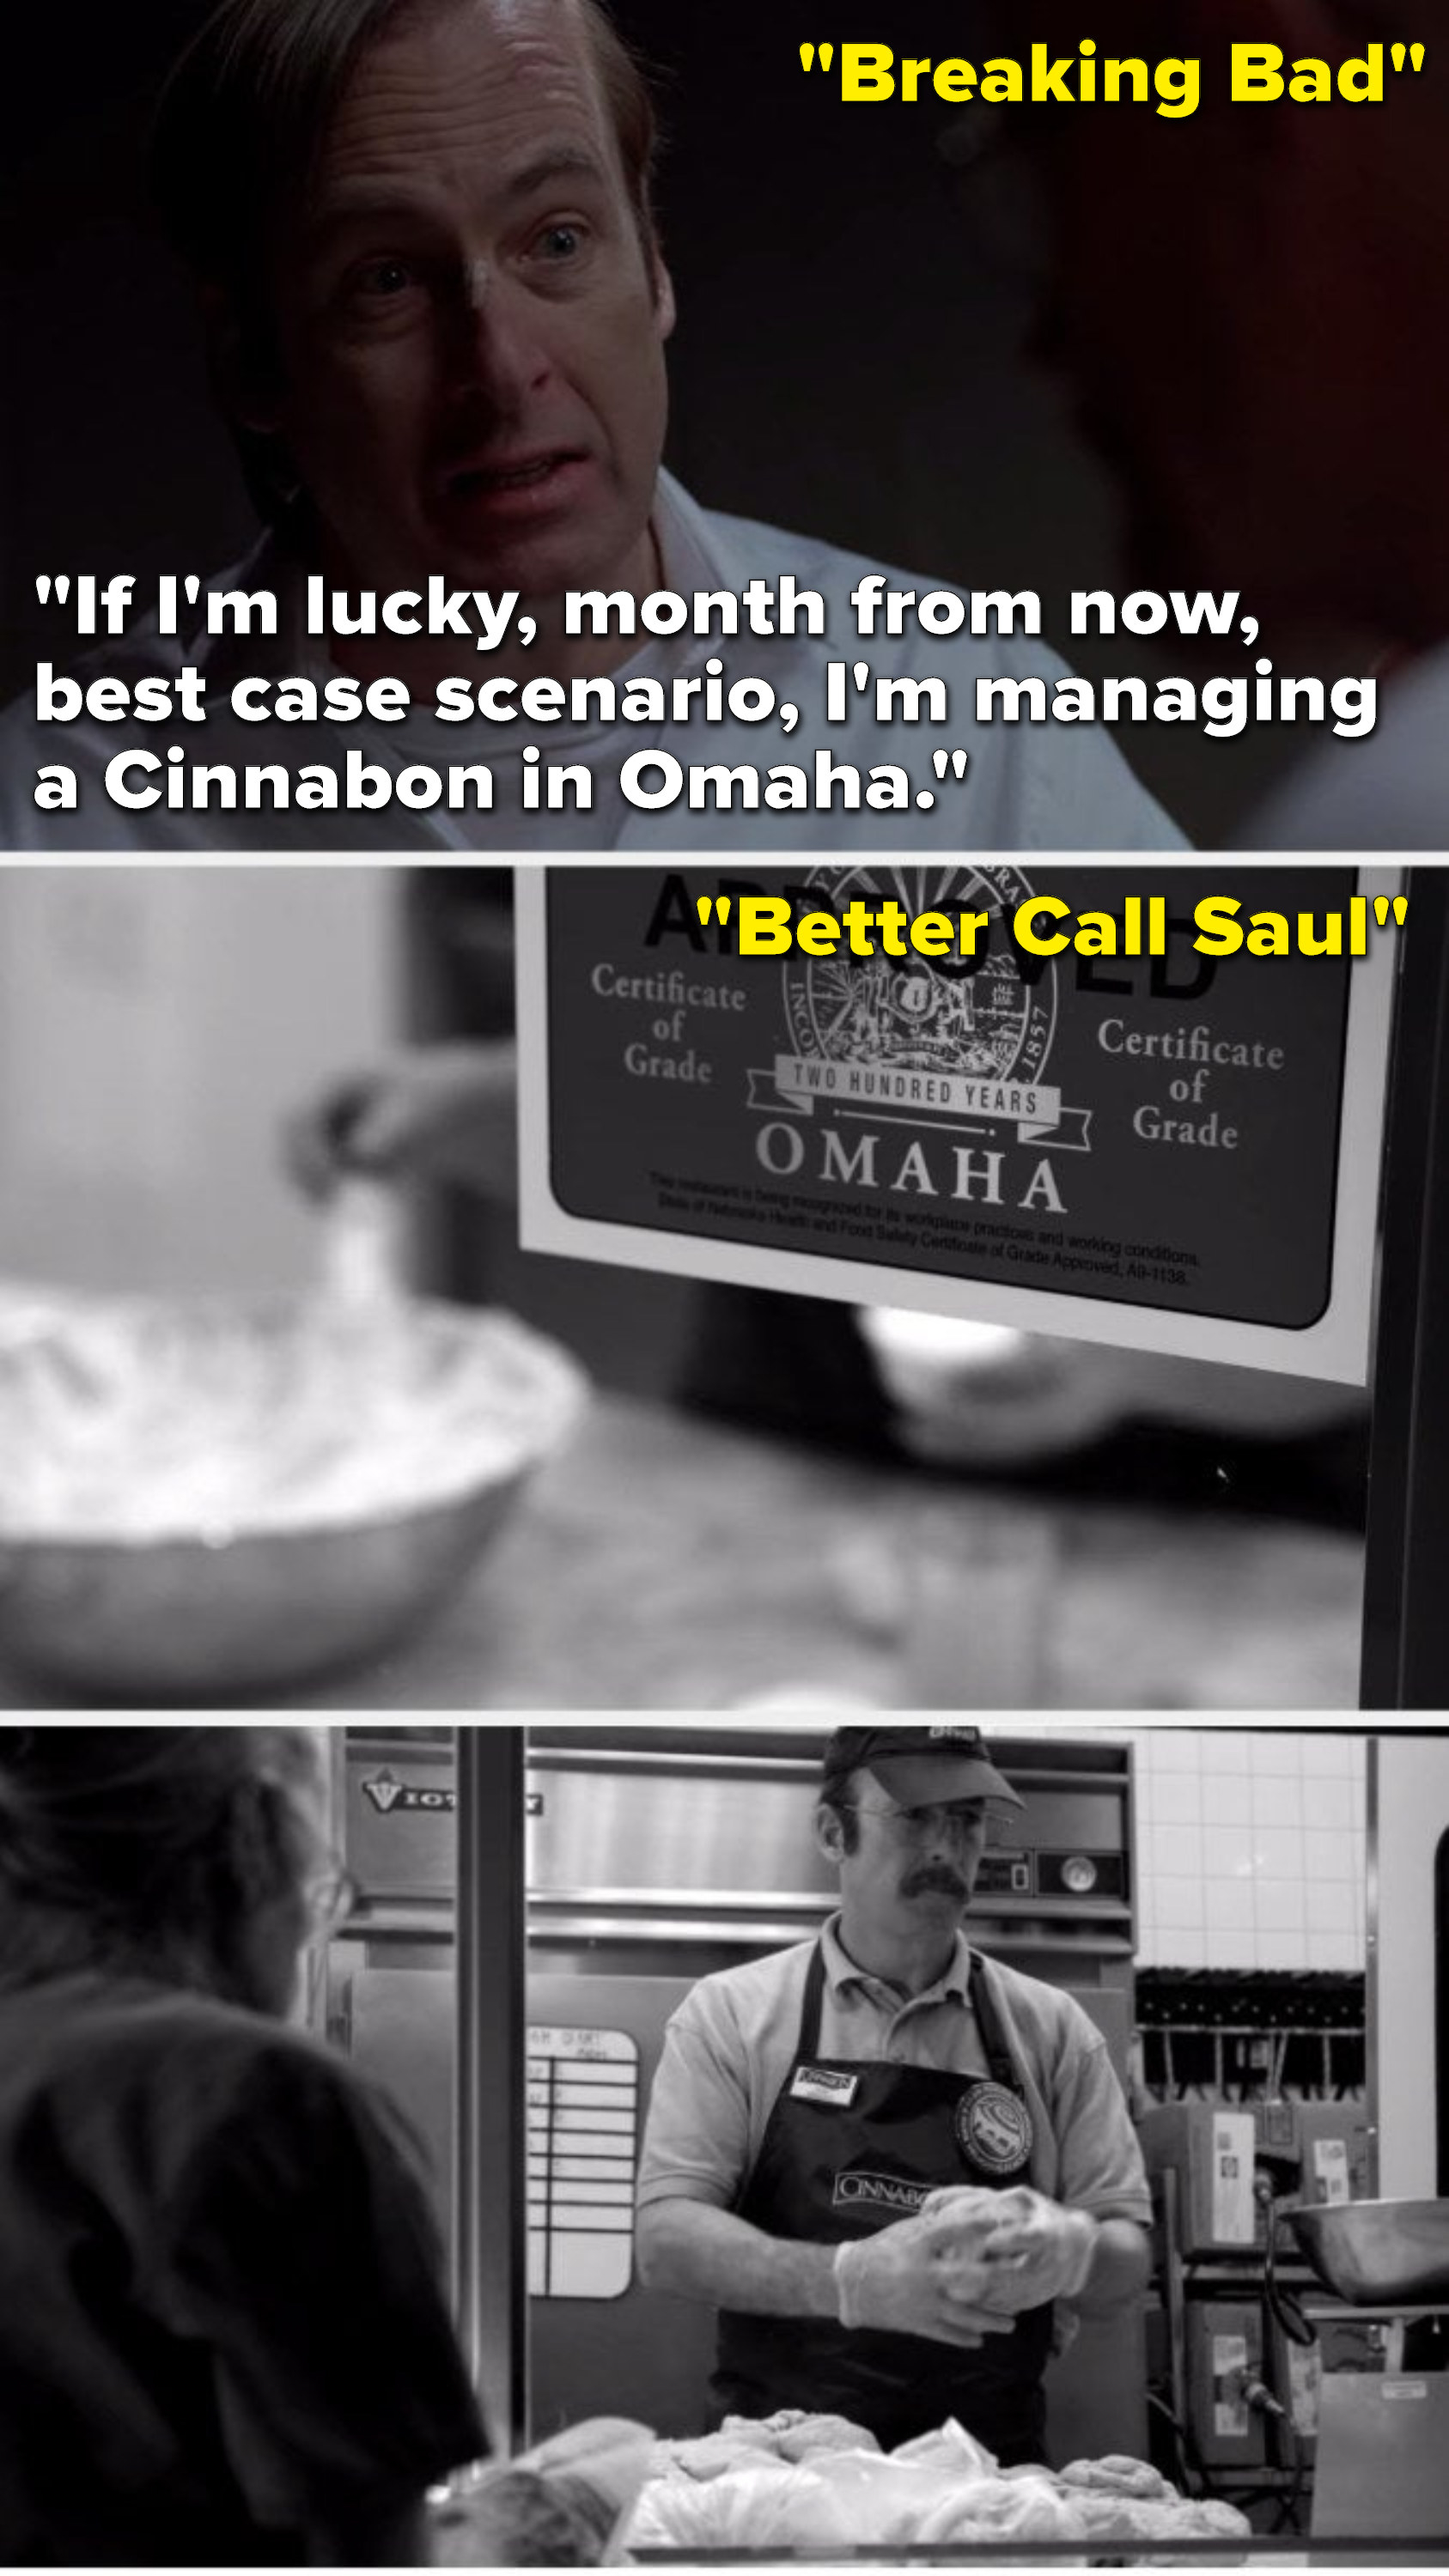 """On Breaking Bad, Sauls says, """"If I'm lucky, month from now, best case scenario, I'm managing a Cinnabon in Omaha,"""" and in """"Better Call Saul"""", he's working at a Cinnabon in Omaha"""